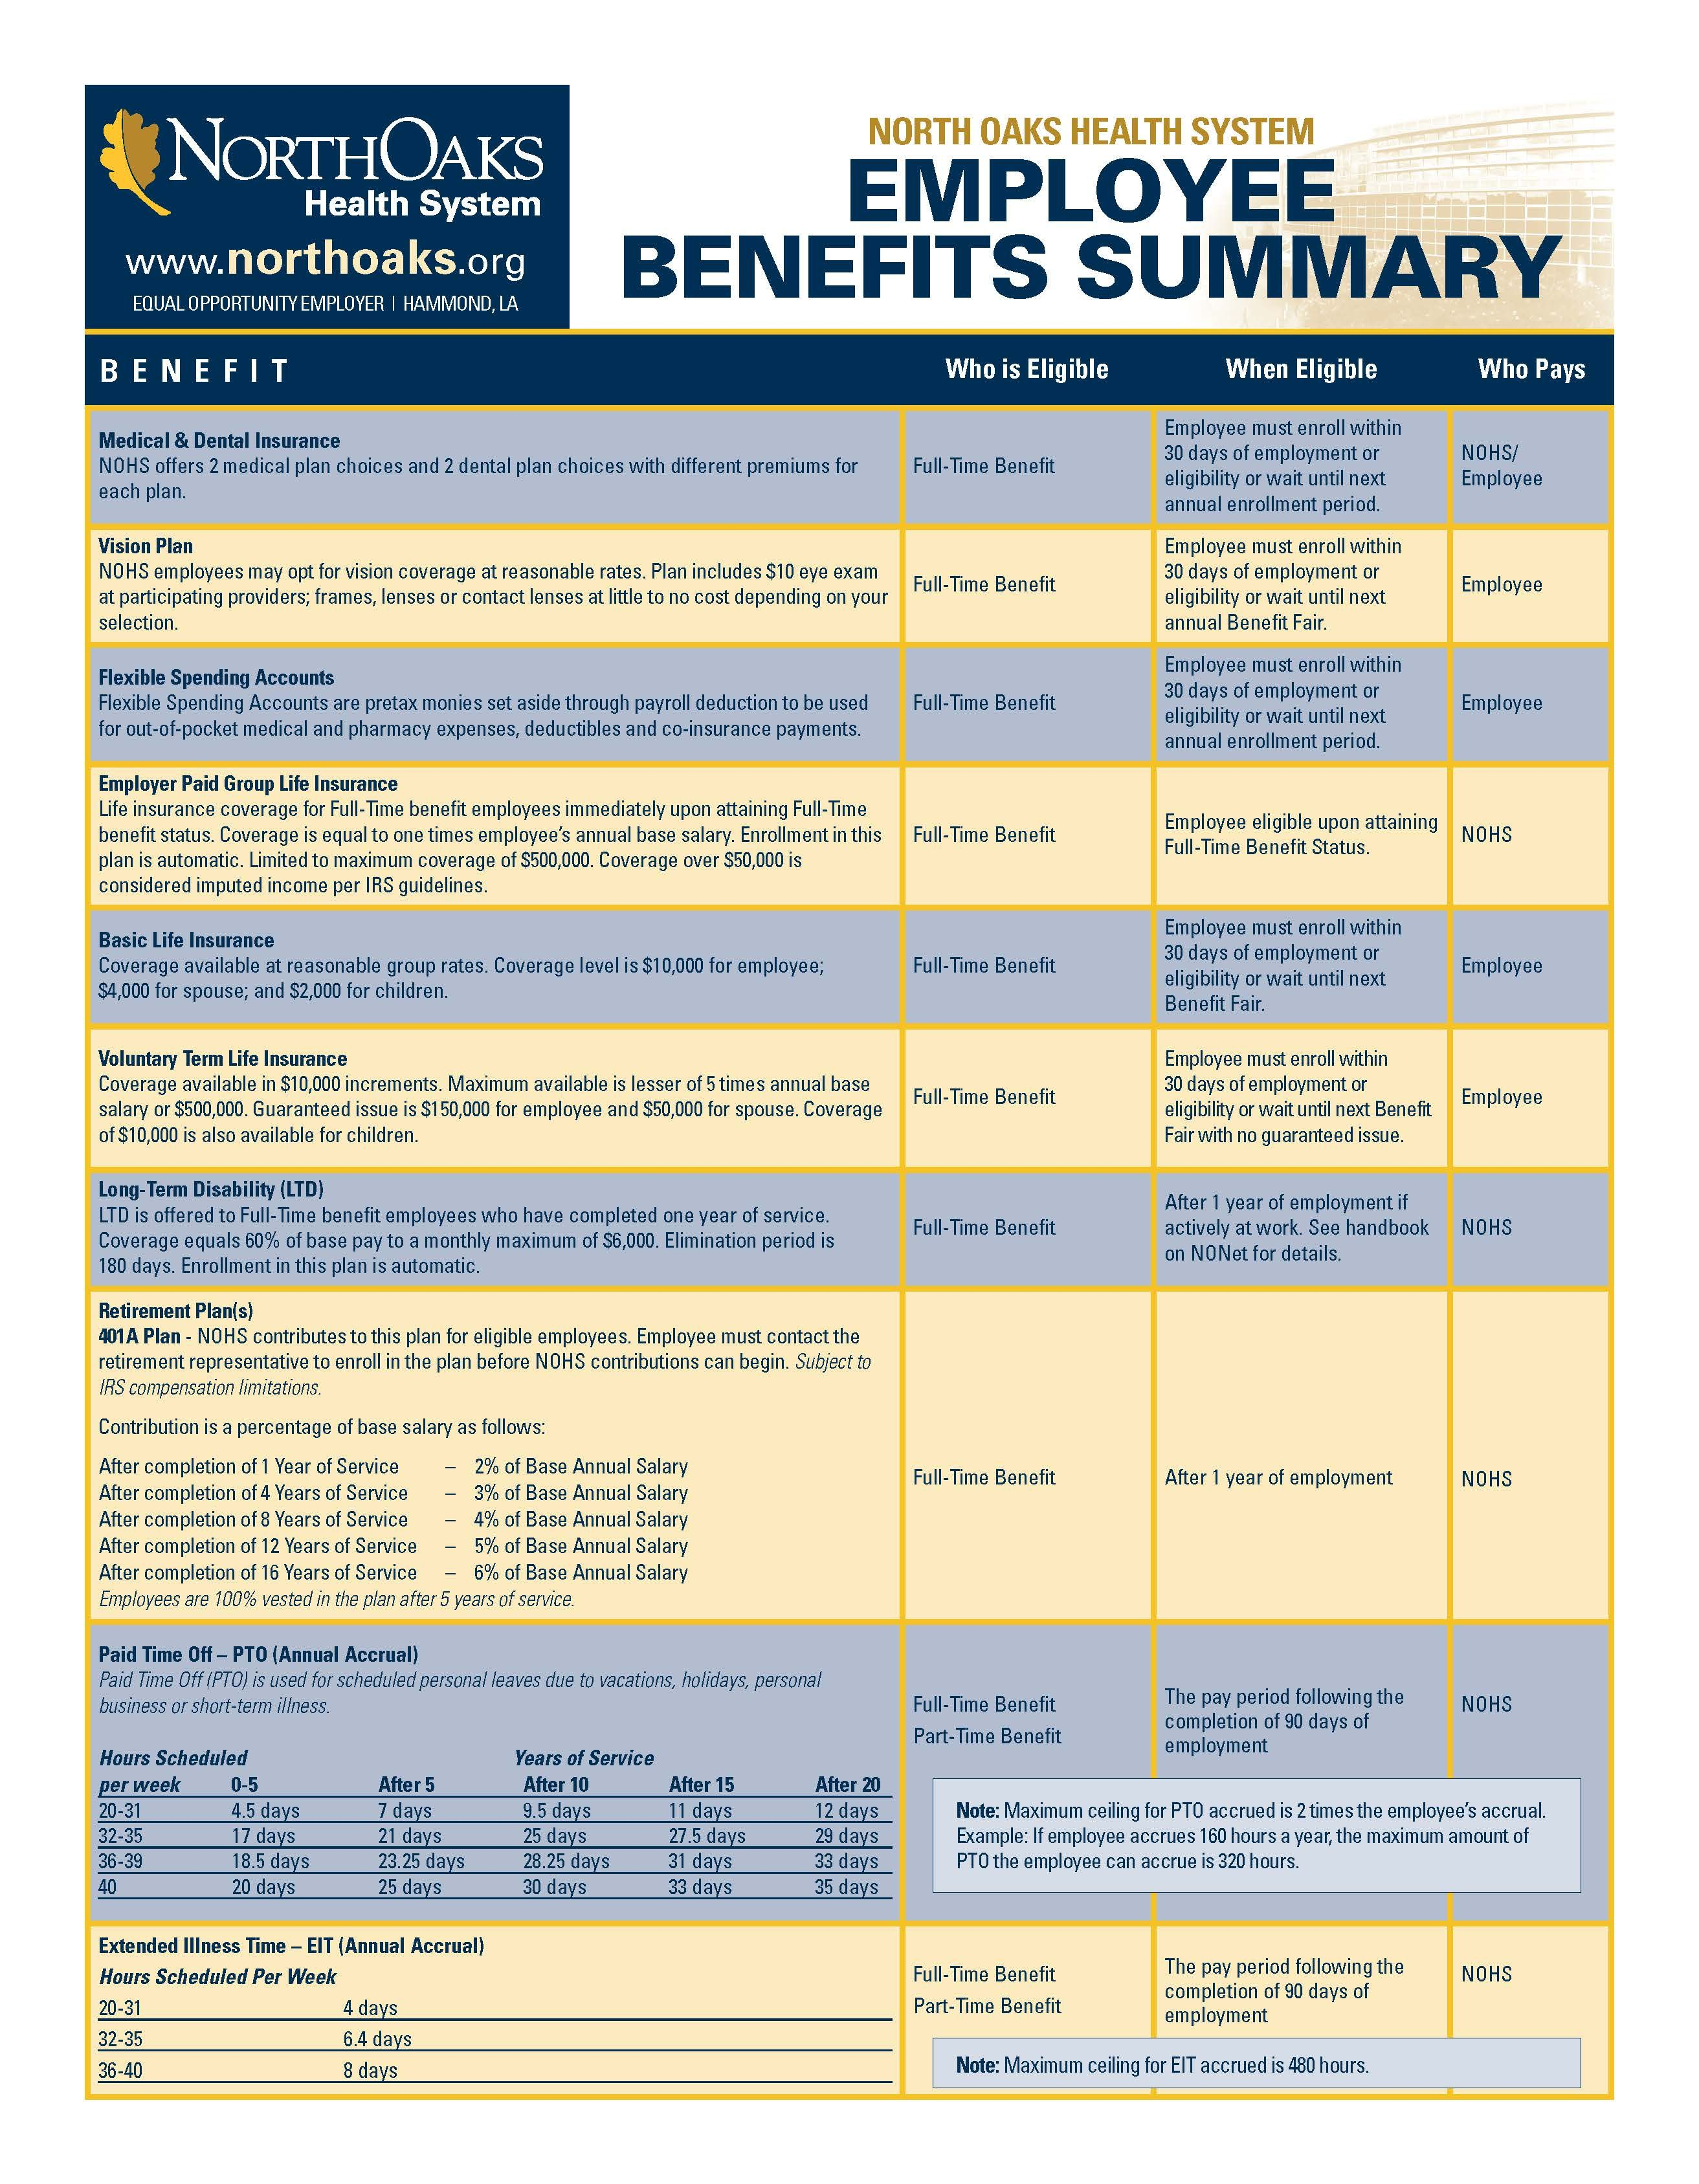 Employee Benefits Summary. To view or download the full